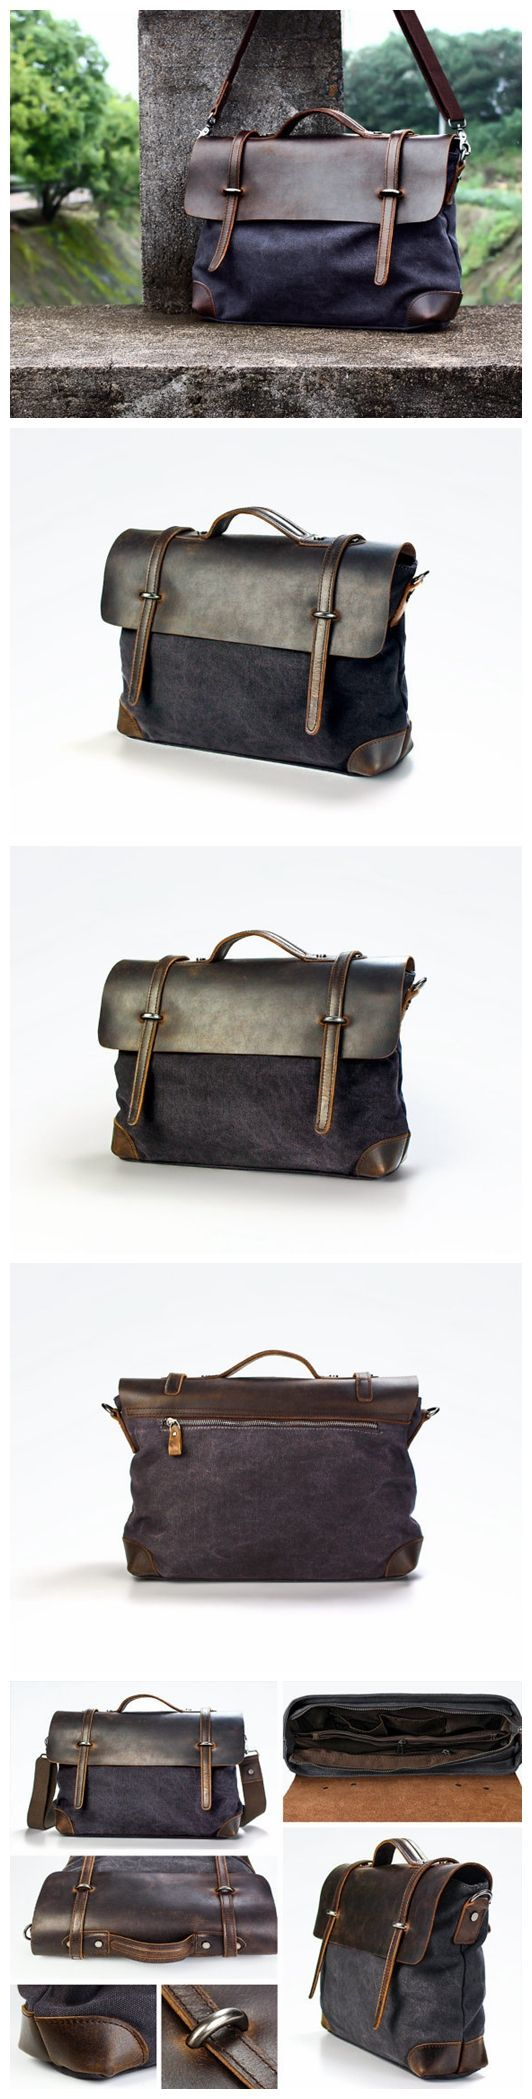 Canvas Messenger Bag / Shoulder Bag / Laptop Bag / Tote Bag